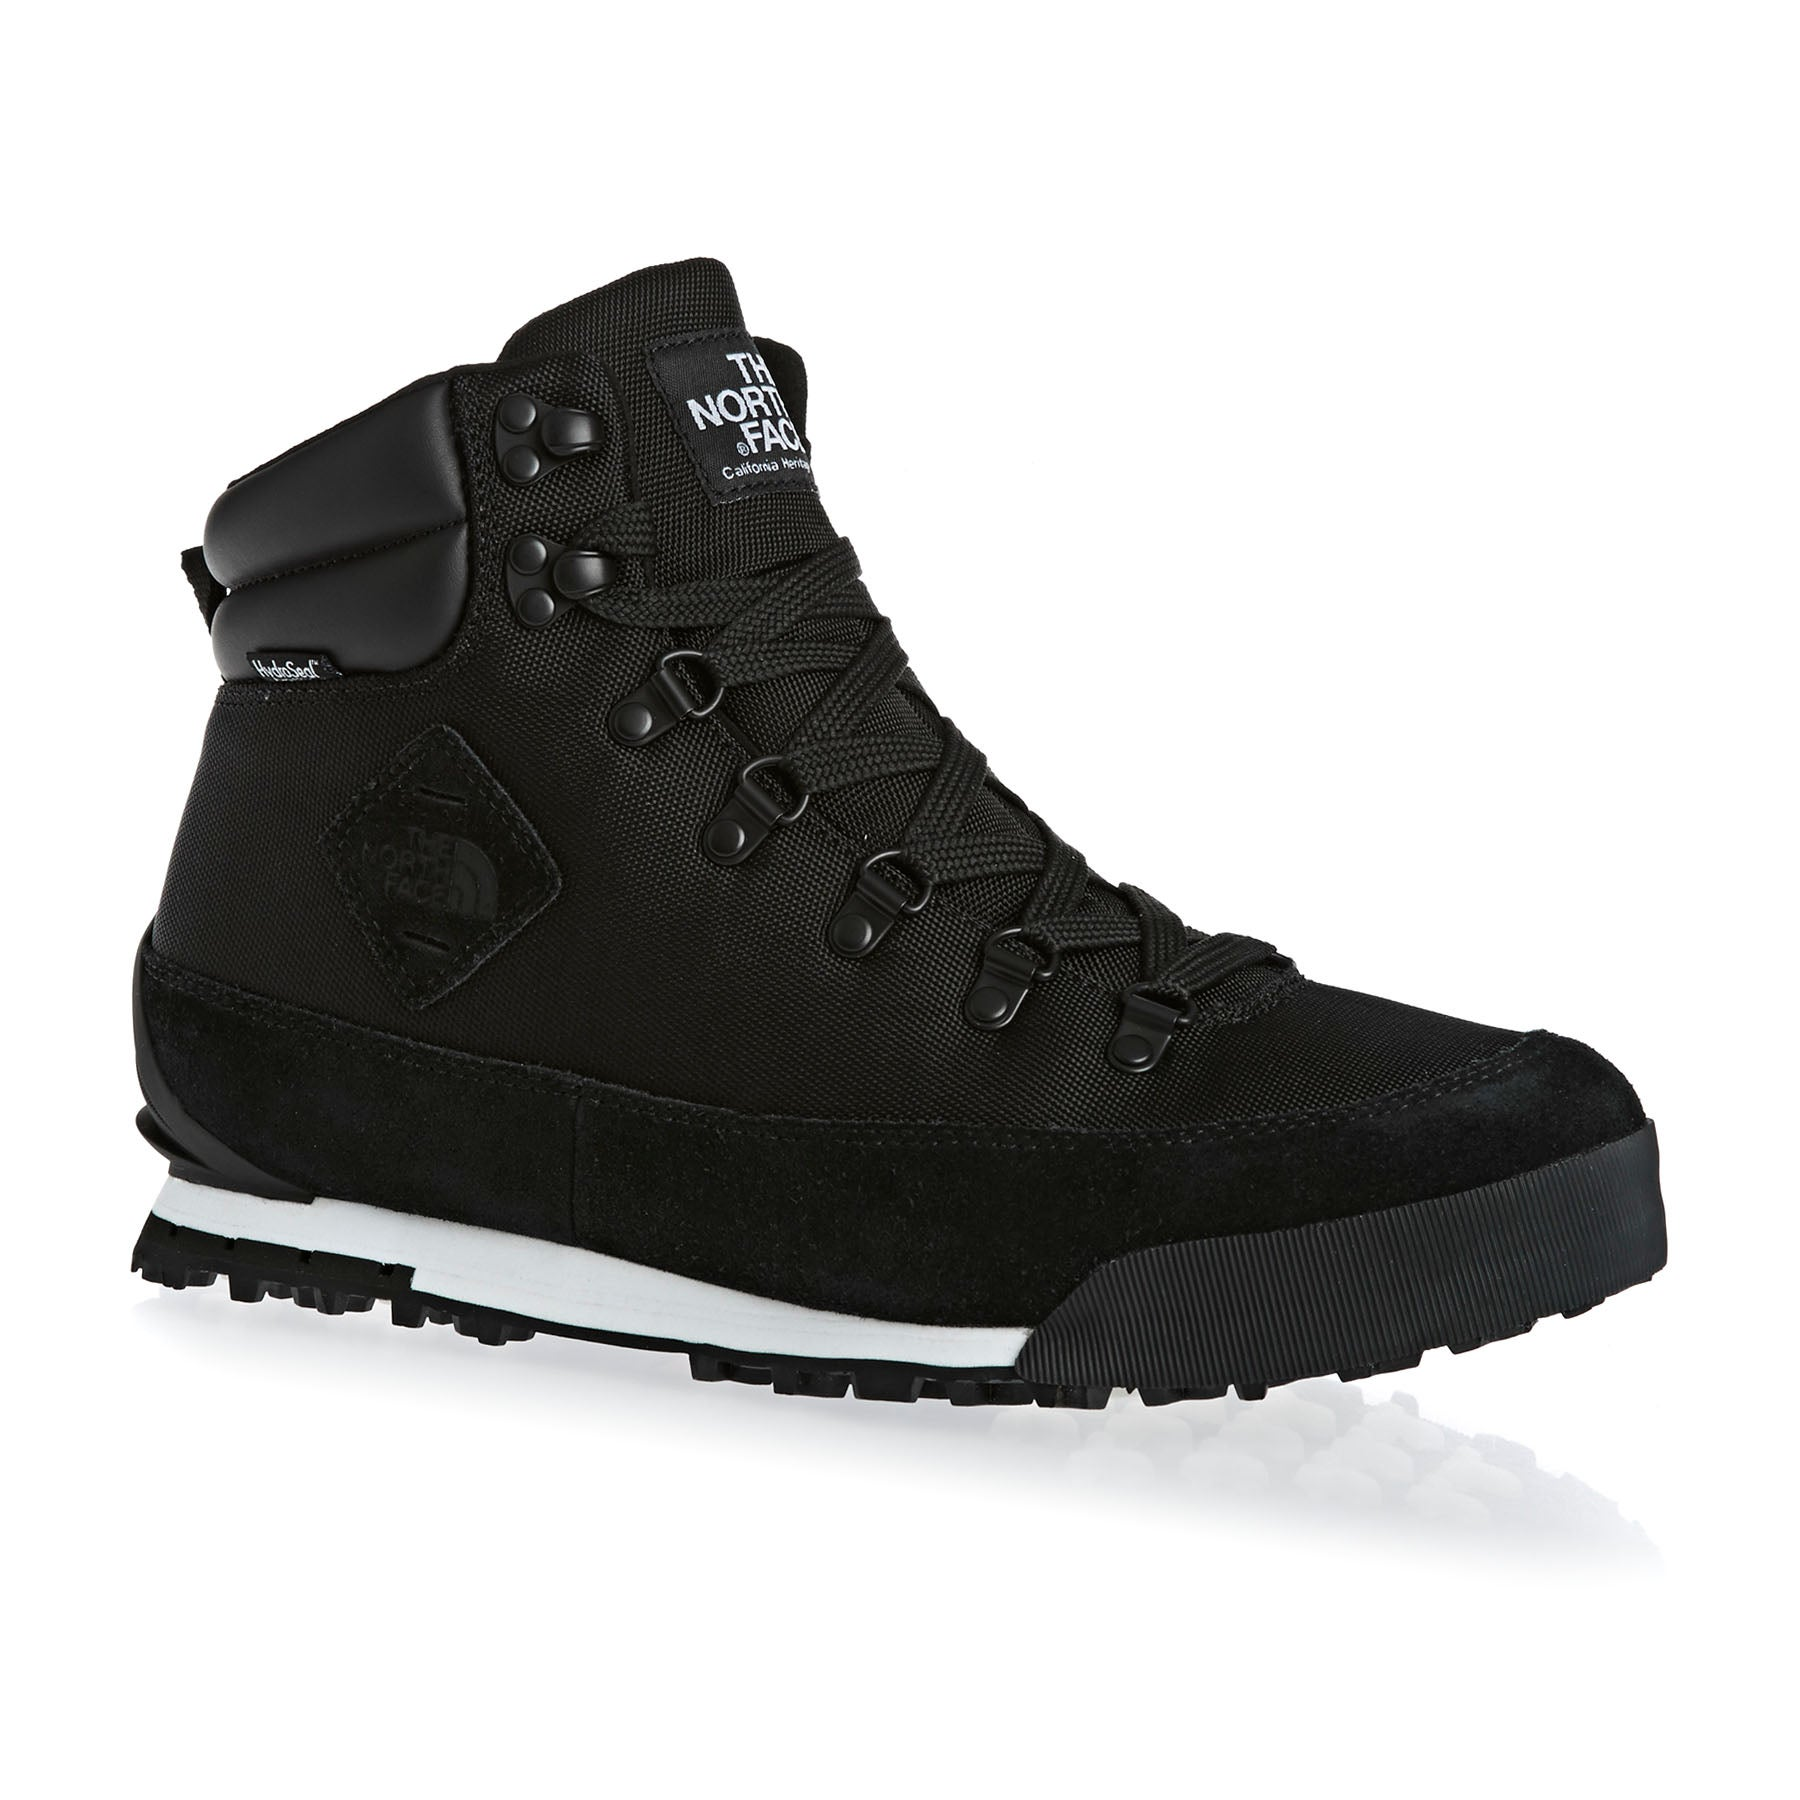 North Face Back To Berkeley Walking Boots - TNF Black